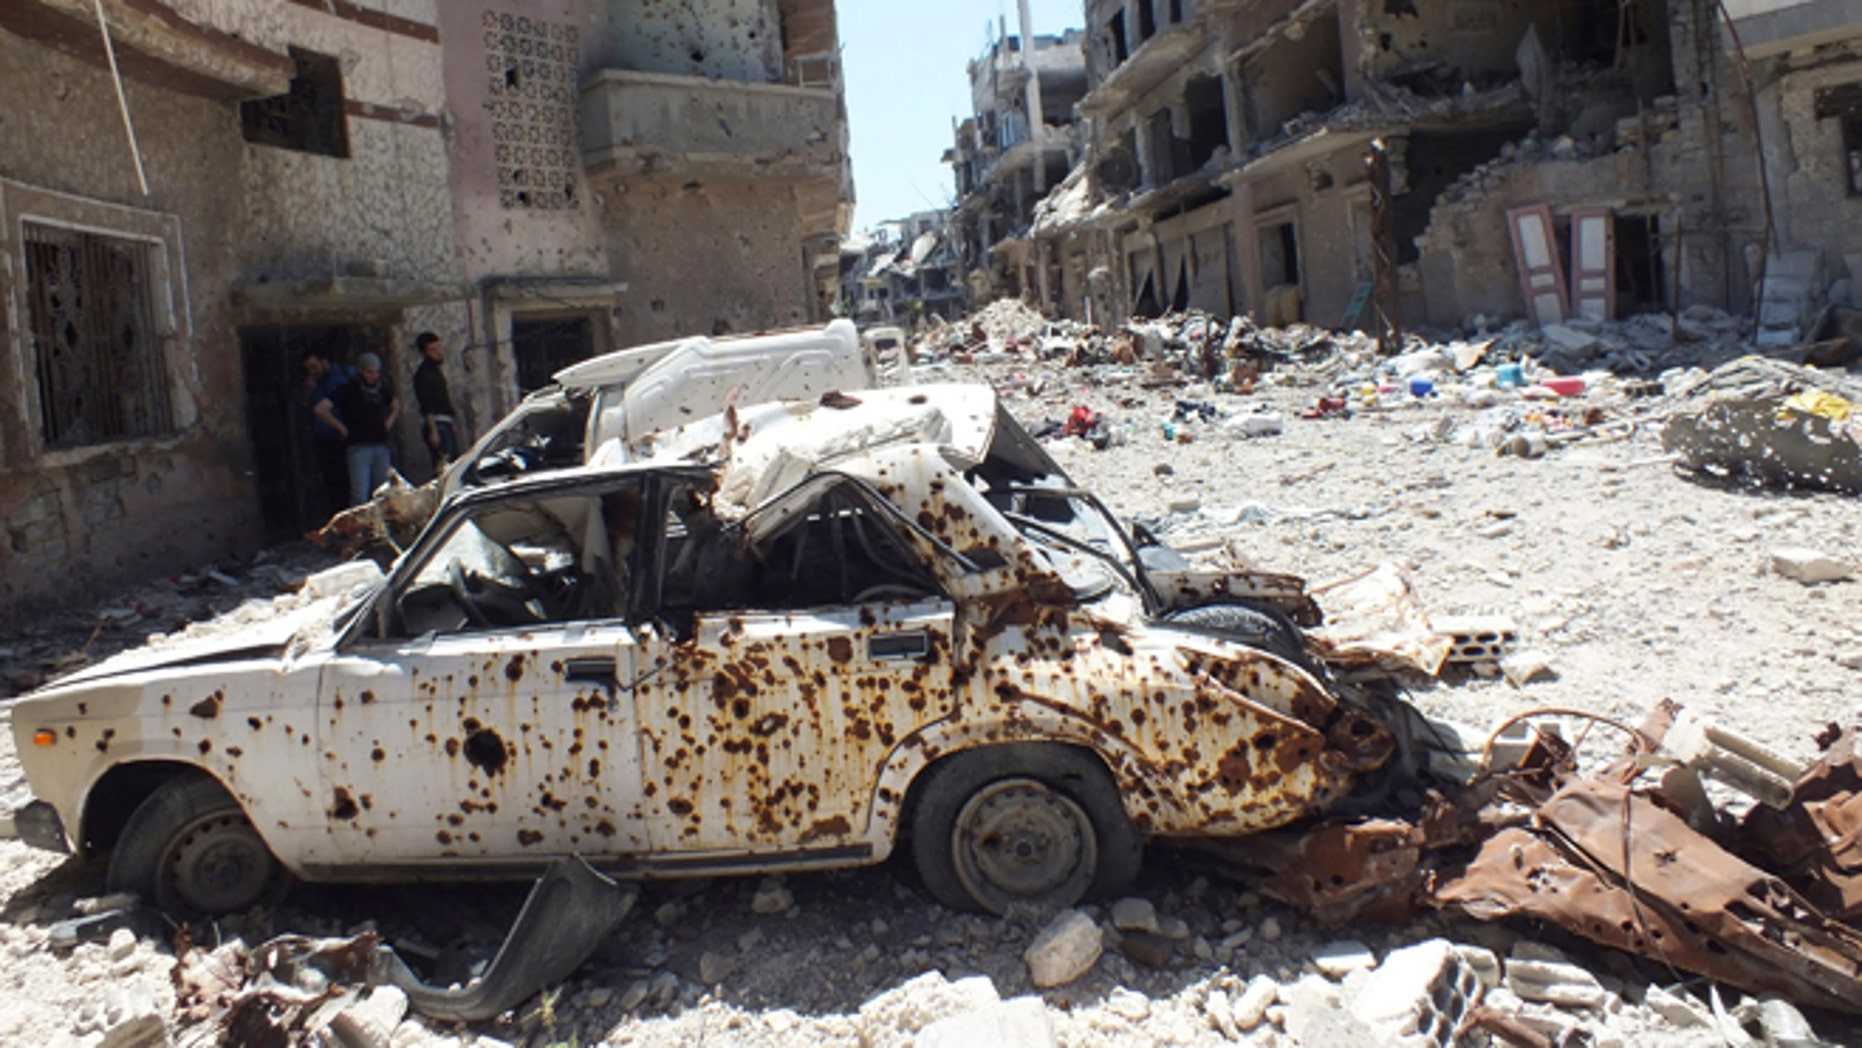 April 28, 2013: A destroyed car is seen on a street lined with buildings damaged by what activists said was shelling by forces loyal to Syria's President Bashar al-Assad in the besieged area of Homs.